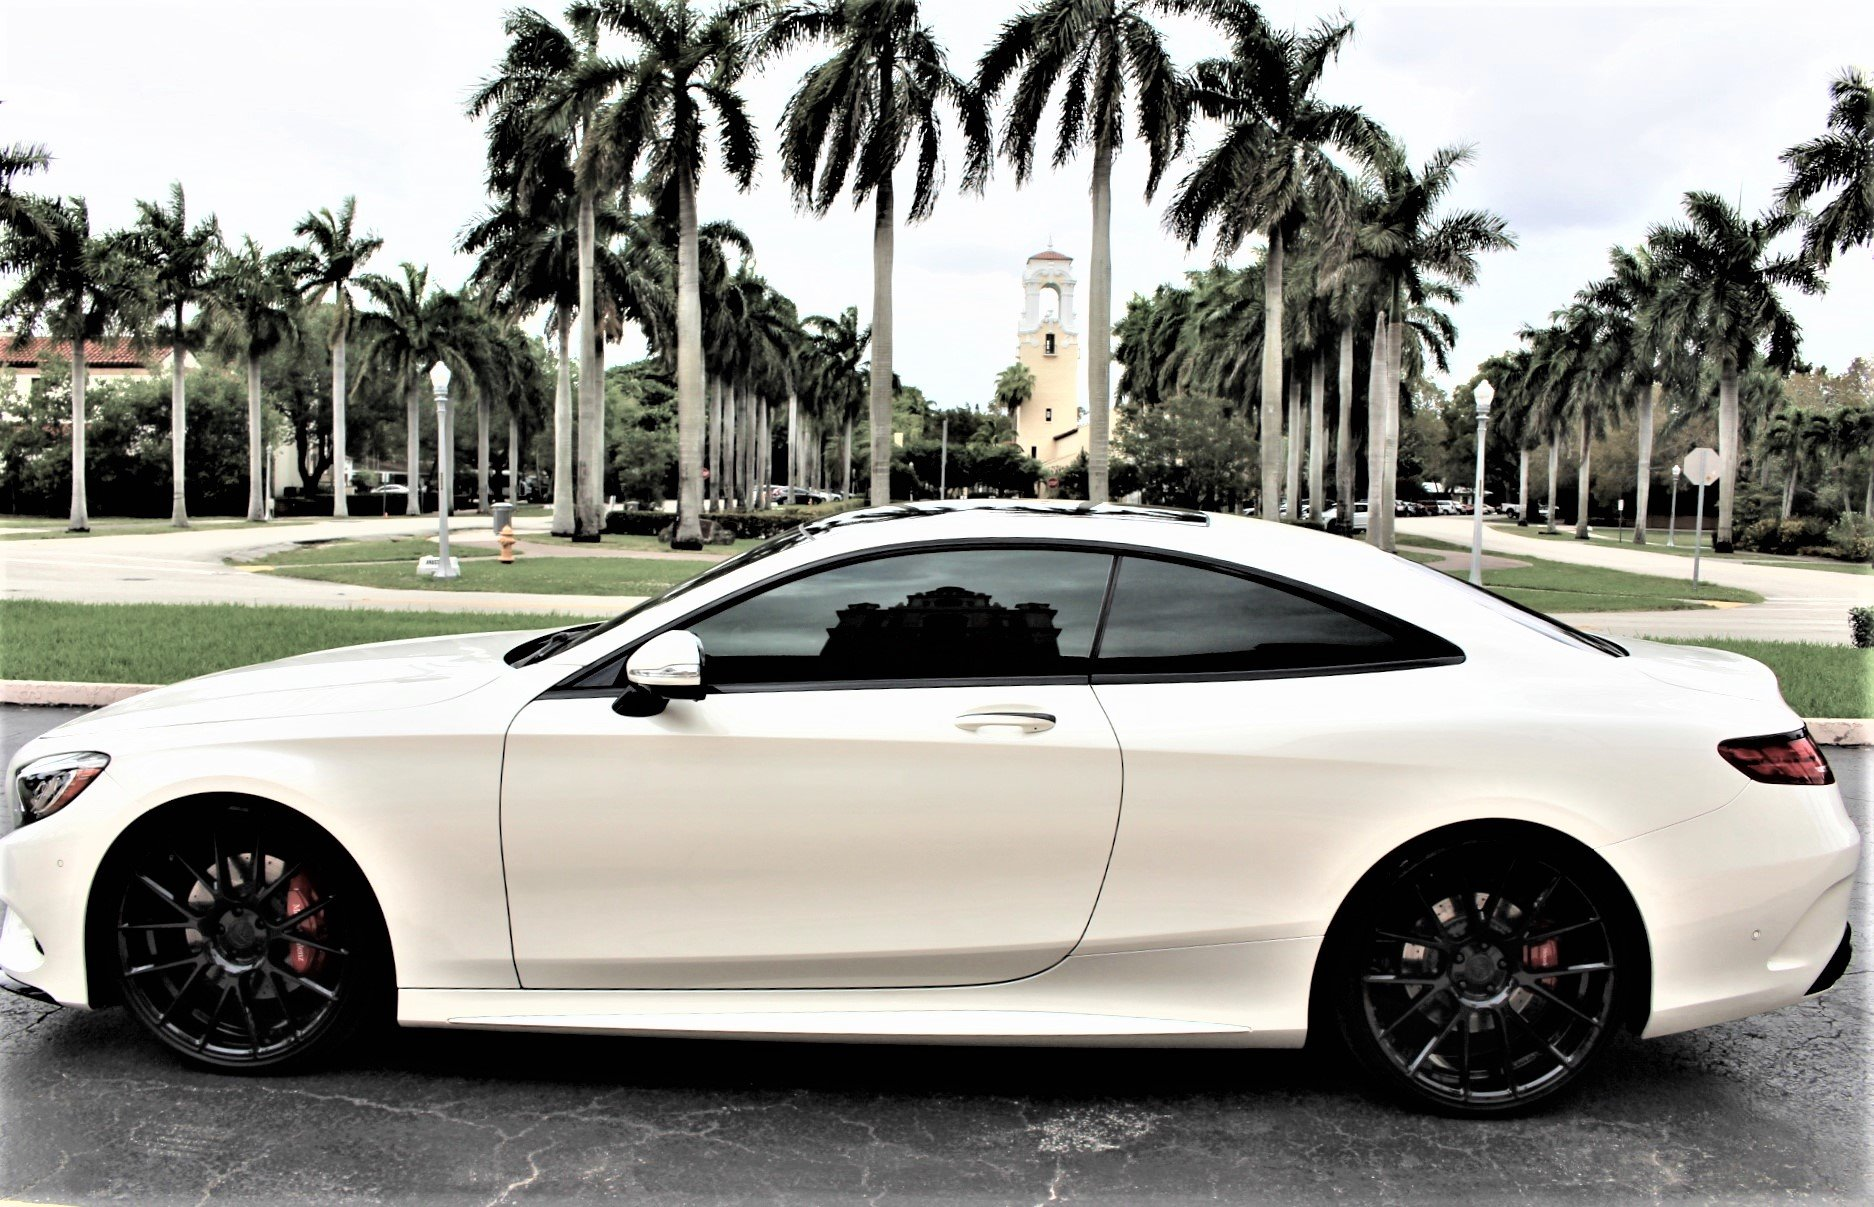 Used 2015 Mercedes-Benz S-Class S 550 4MATIC for sale Sold at The Gables Sports Cars in Miami FL 33146 3